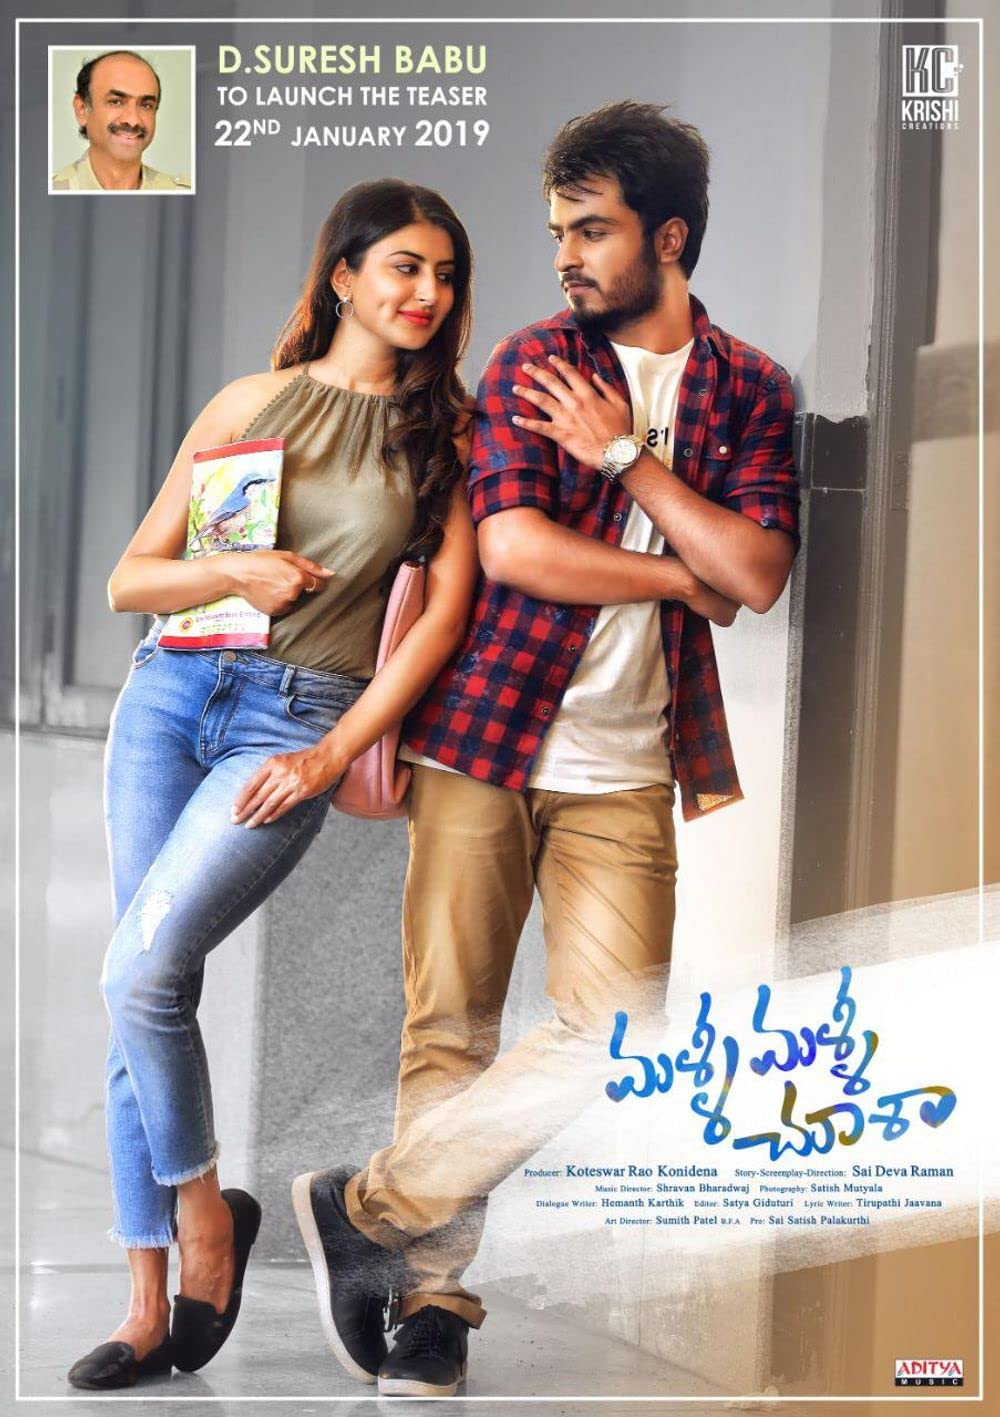 Kadak (Malli Malli Chusa) (2020) HDRip Hindi Dubbed 2020-11-02